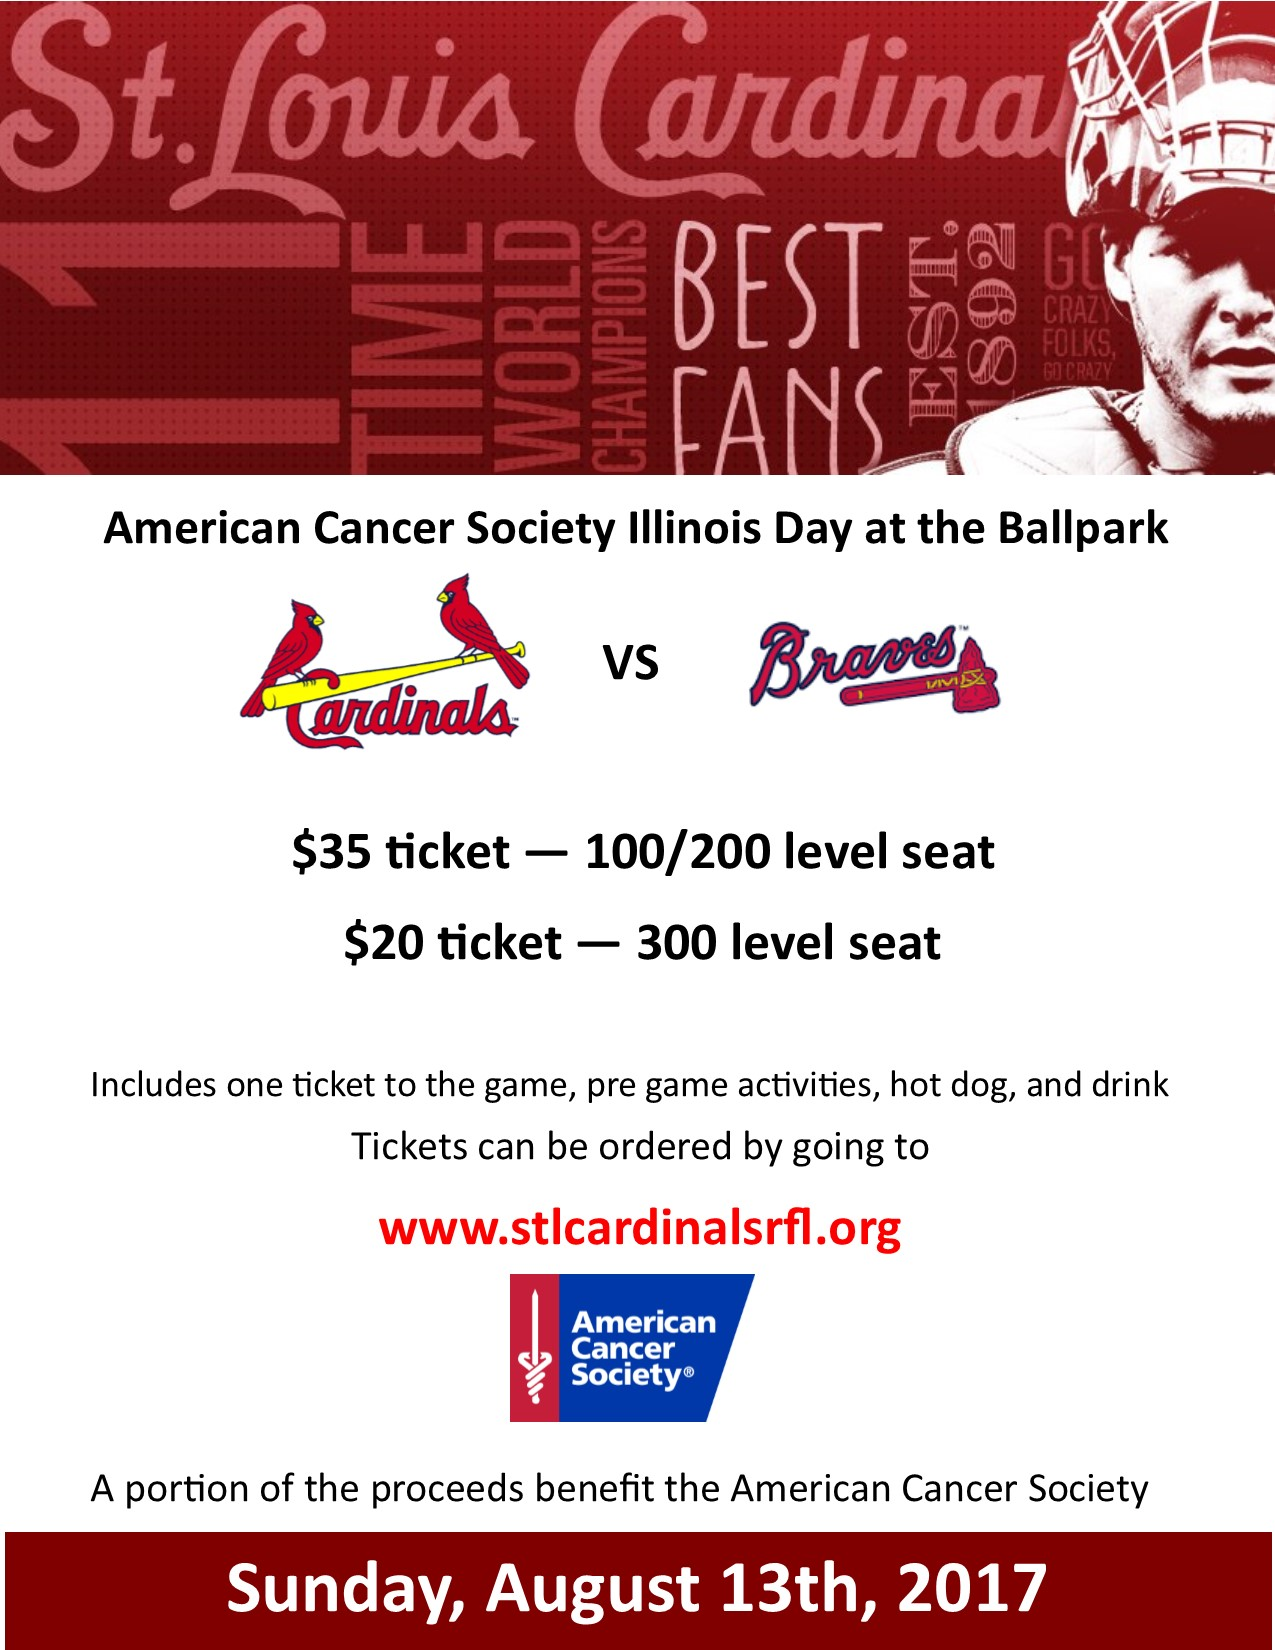 Illinois jefferson county bonnie - Cardinals Tickets Available Starting February 20th